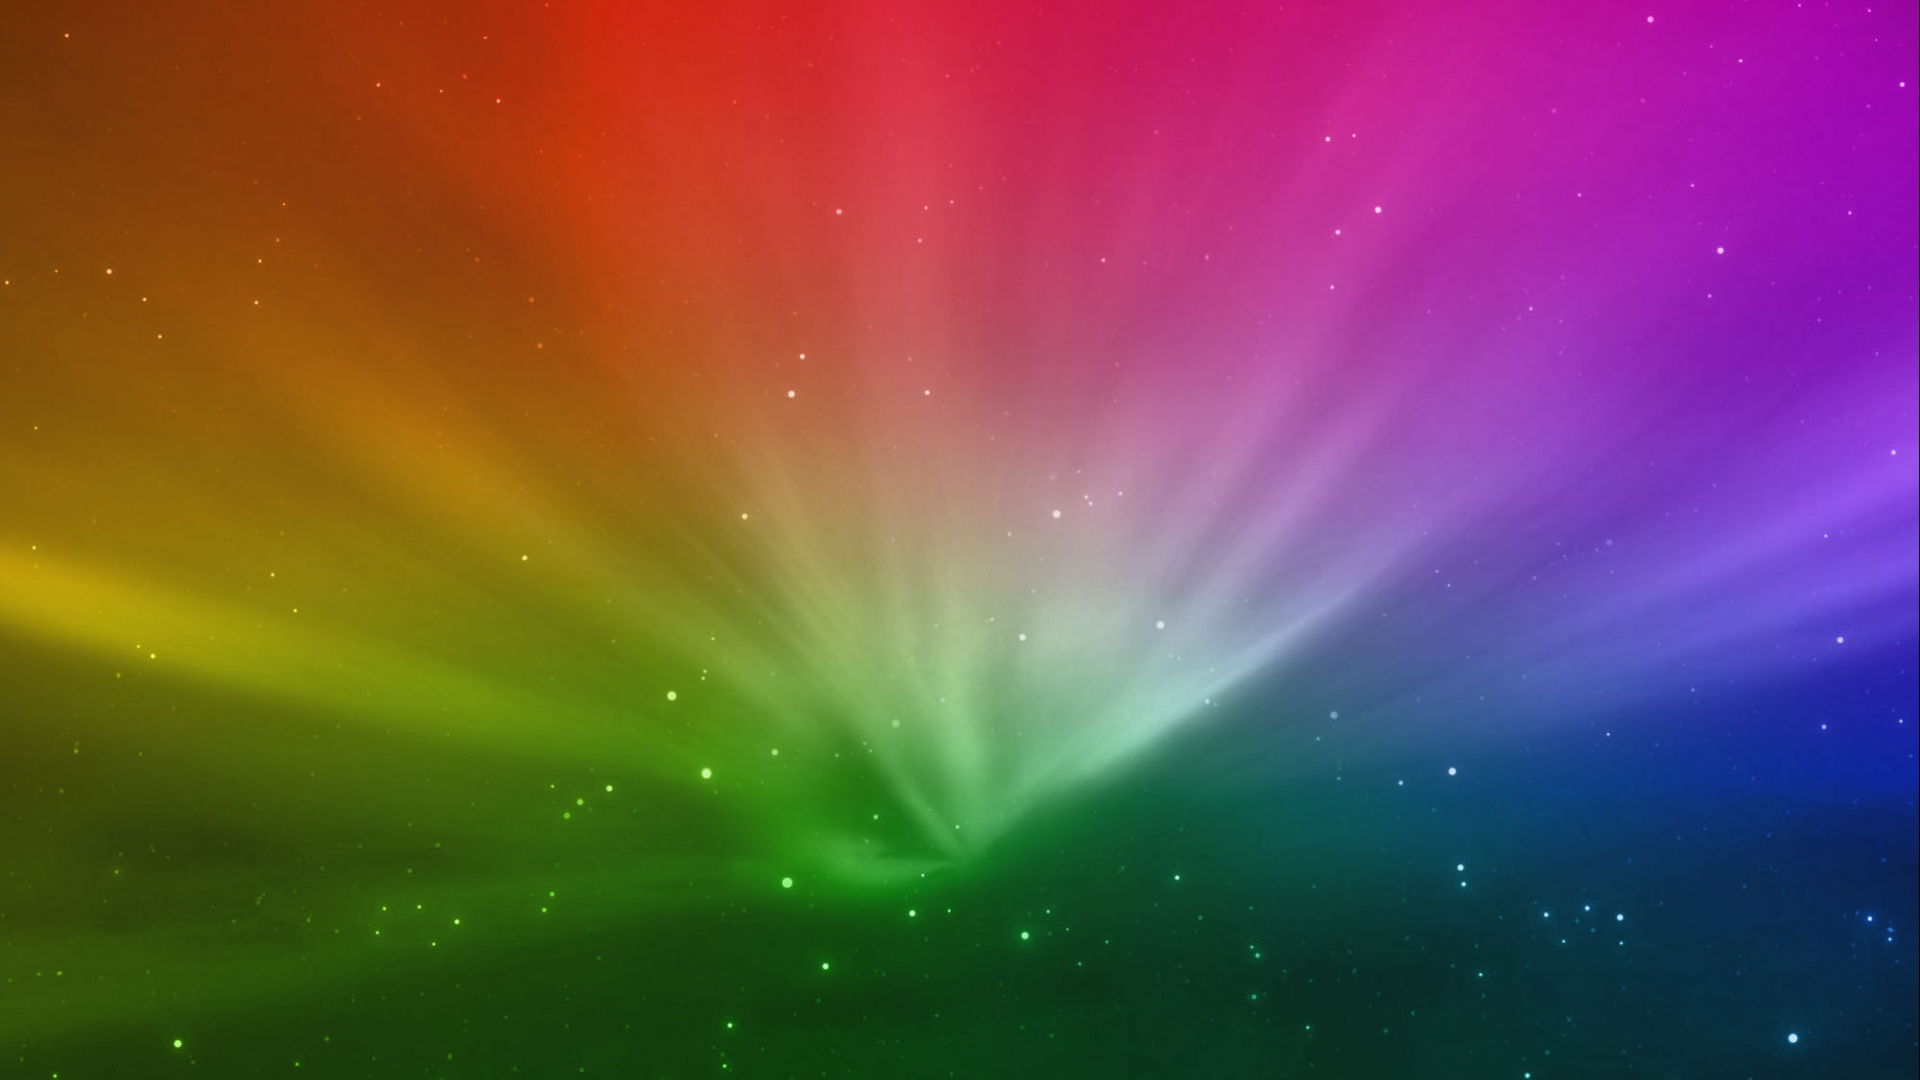 Colorful OS X Wallpaper